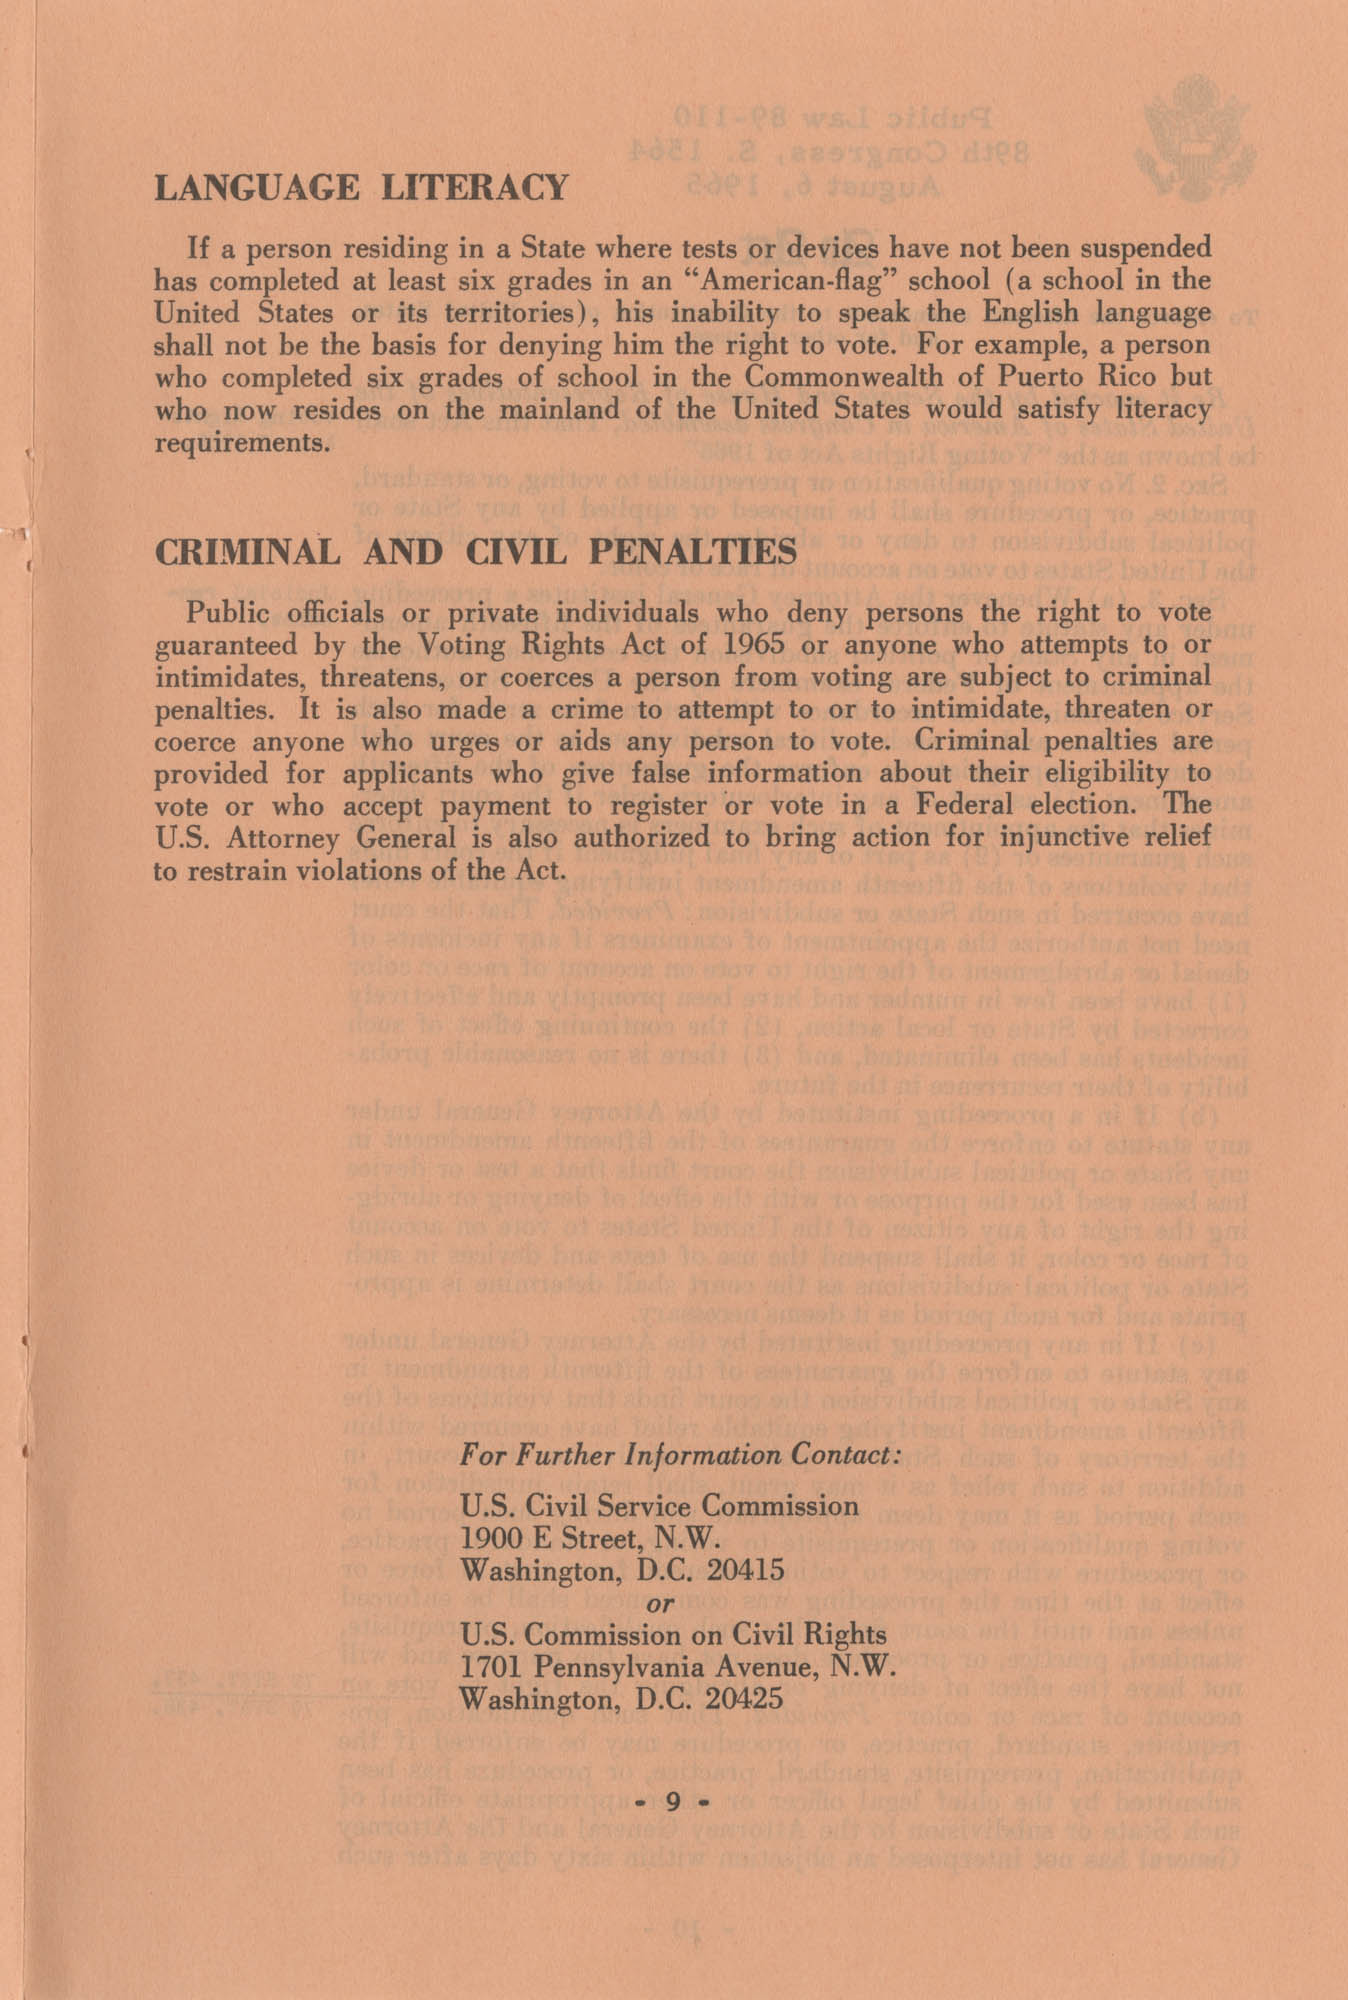 The Voting Rights Act of 1965, Page 9